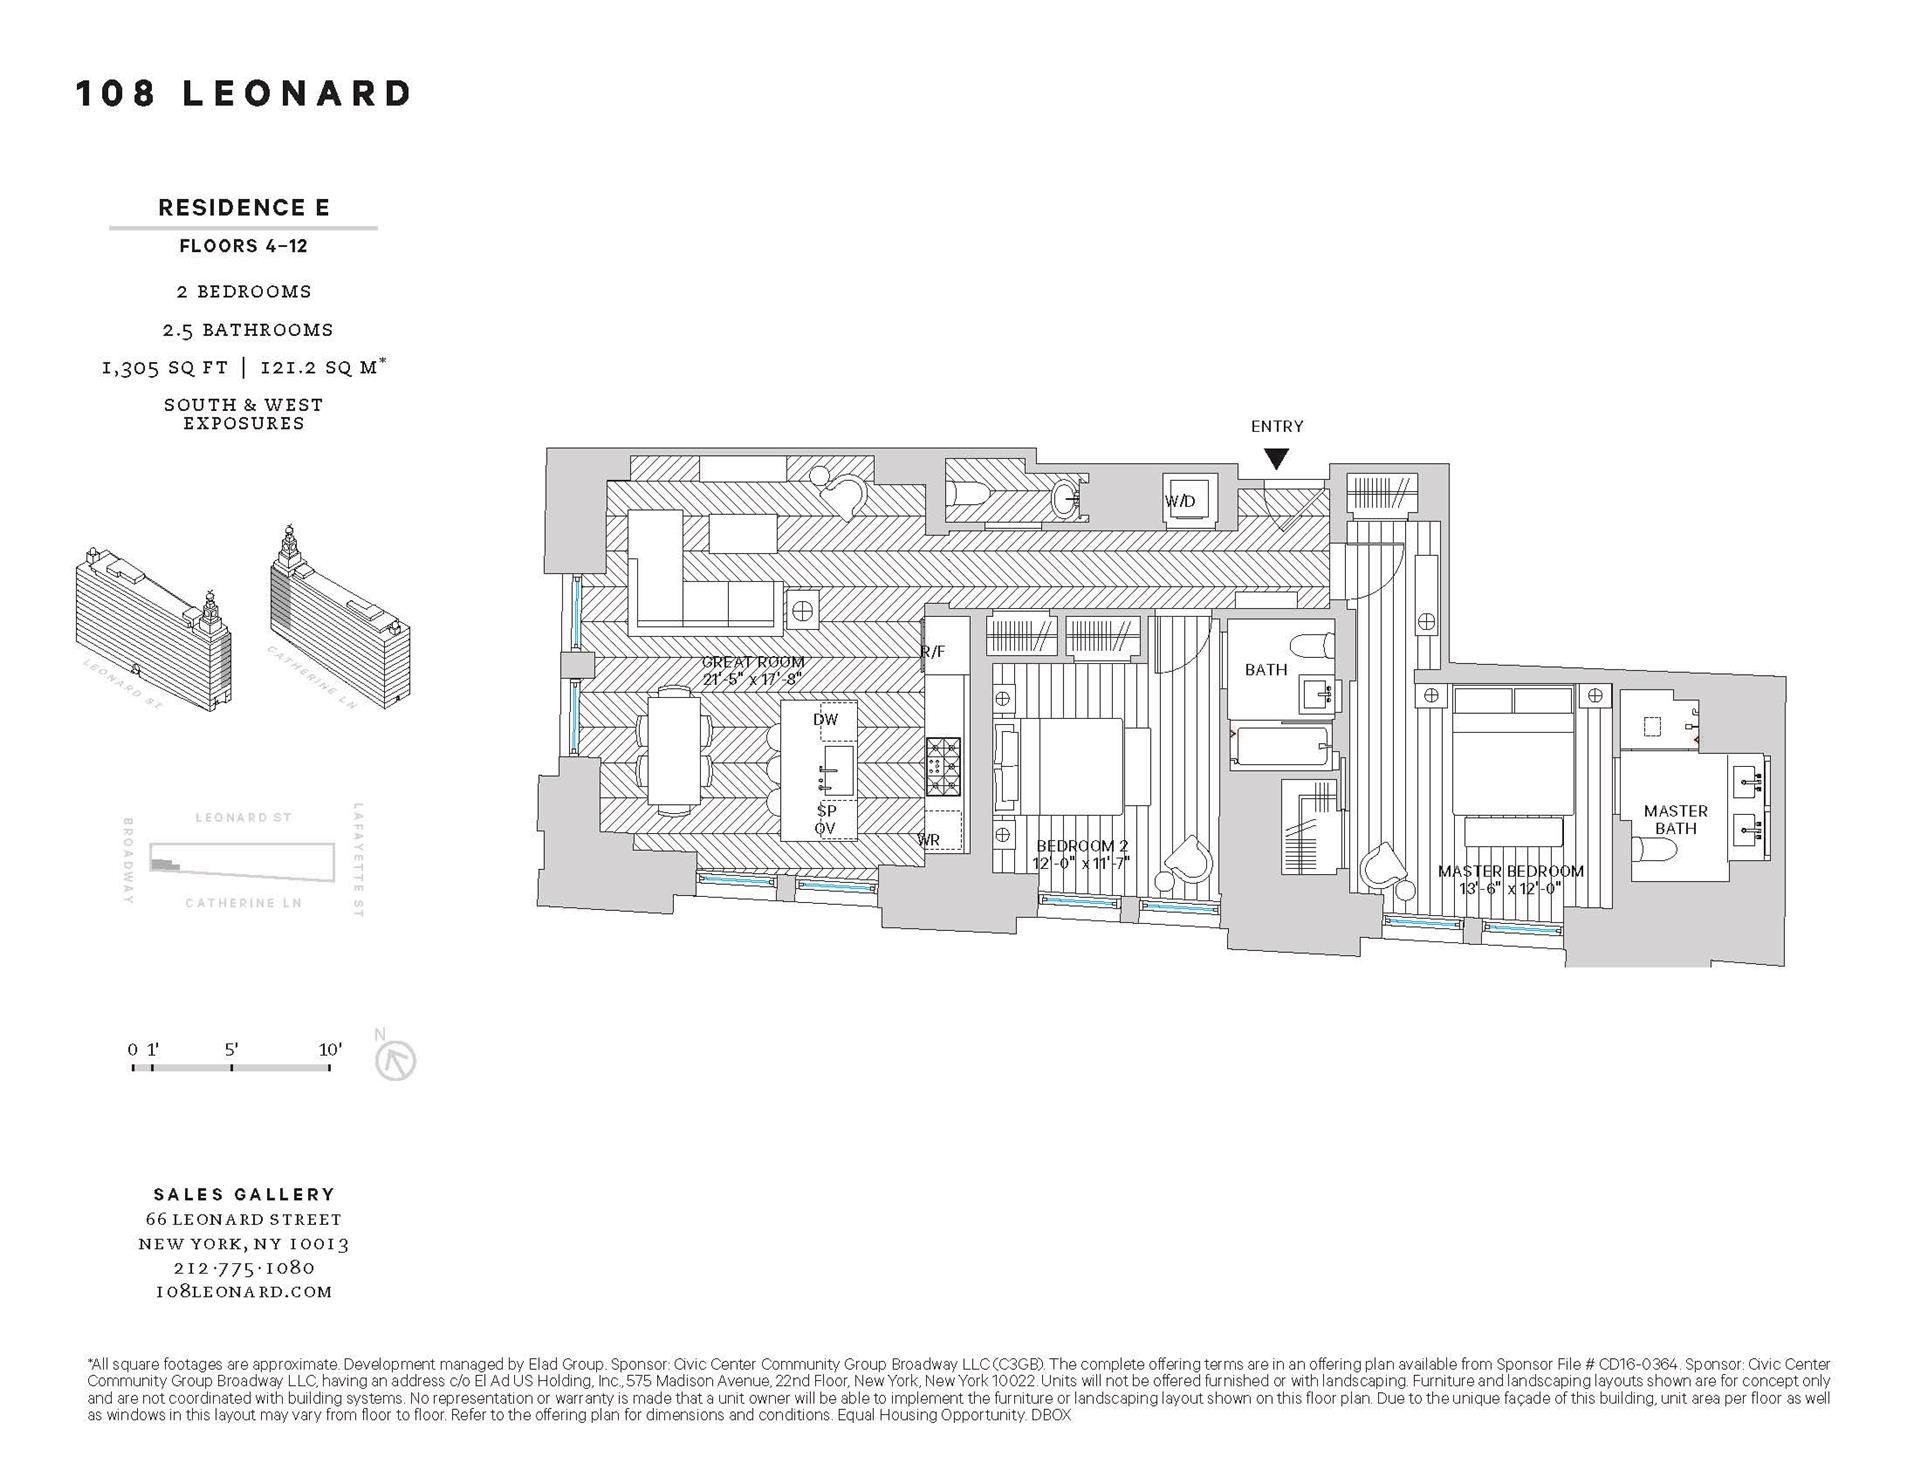 Floor plan of 108 Leonard St, 10E - TriBeCa, New York